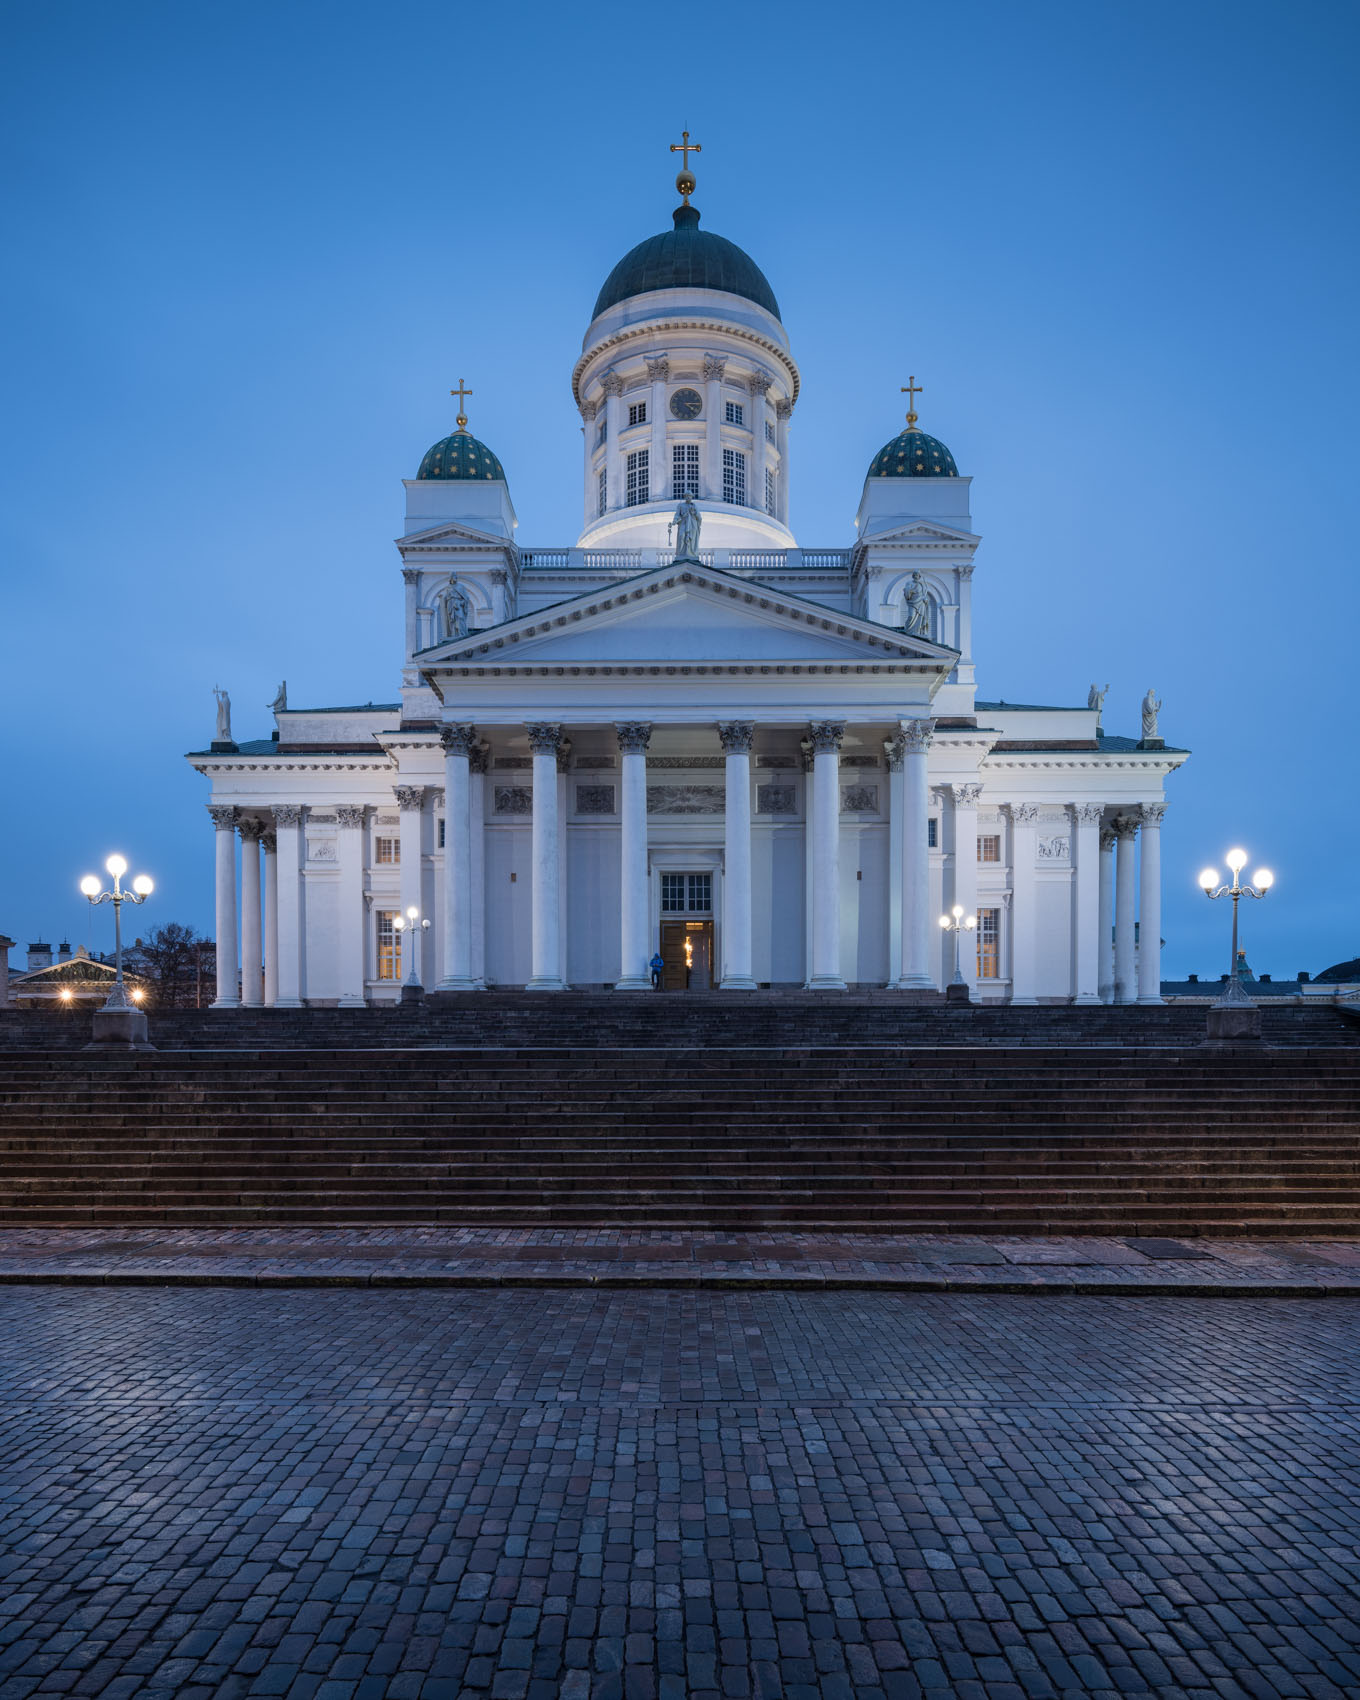 helsinki-cathedral-architecture-of-finland-at-night